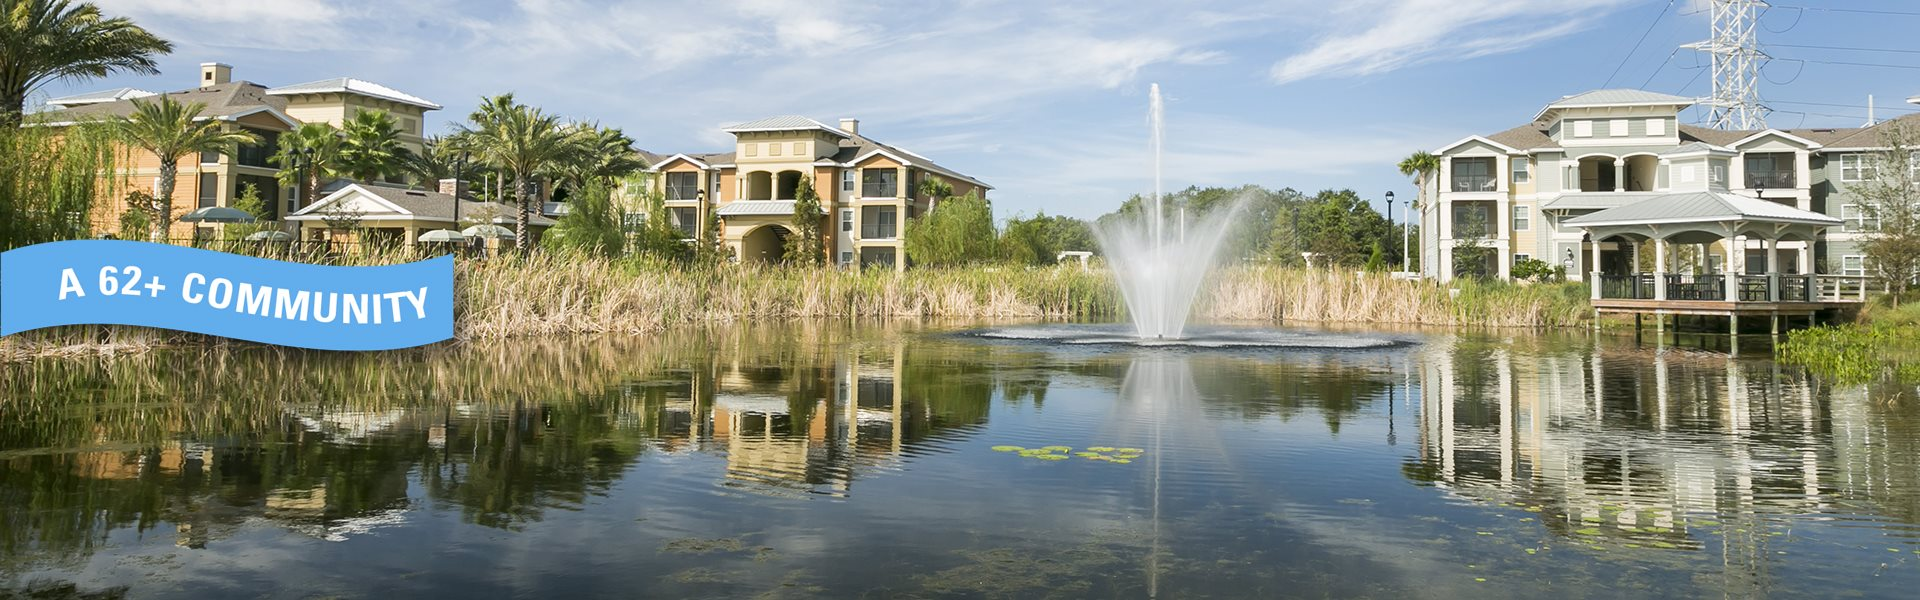 Fountains at Falkenburg Apartments for rent in Tampa, FL. Make this community your new home or visit other Concord Rents communities at ConcordRents.com. Lake view